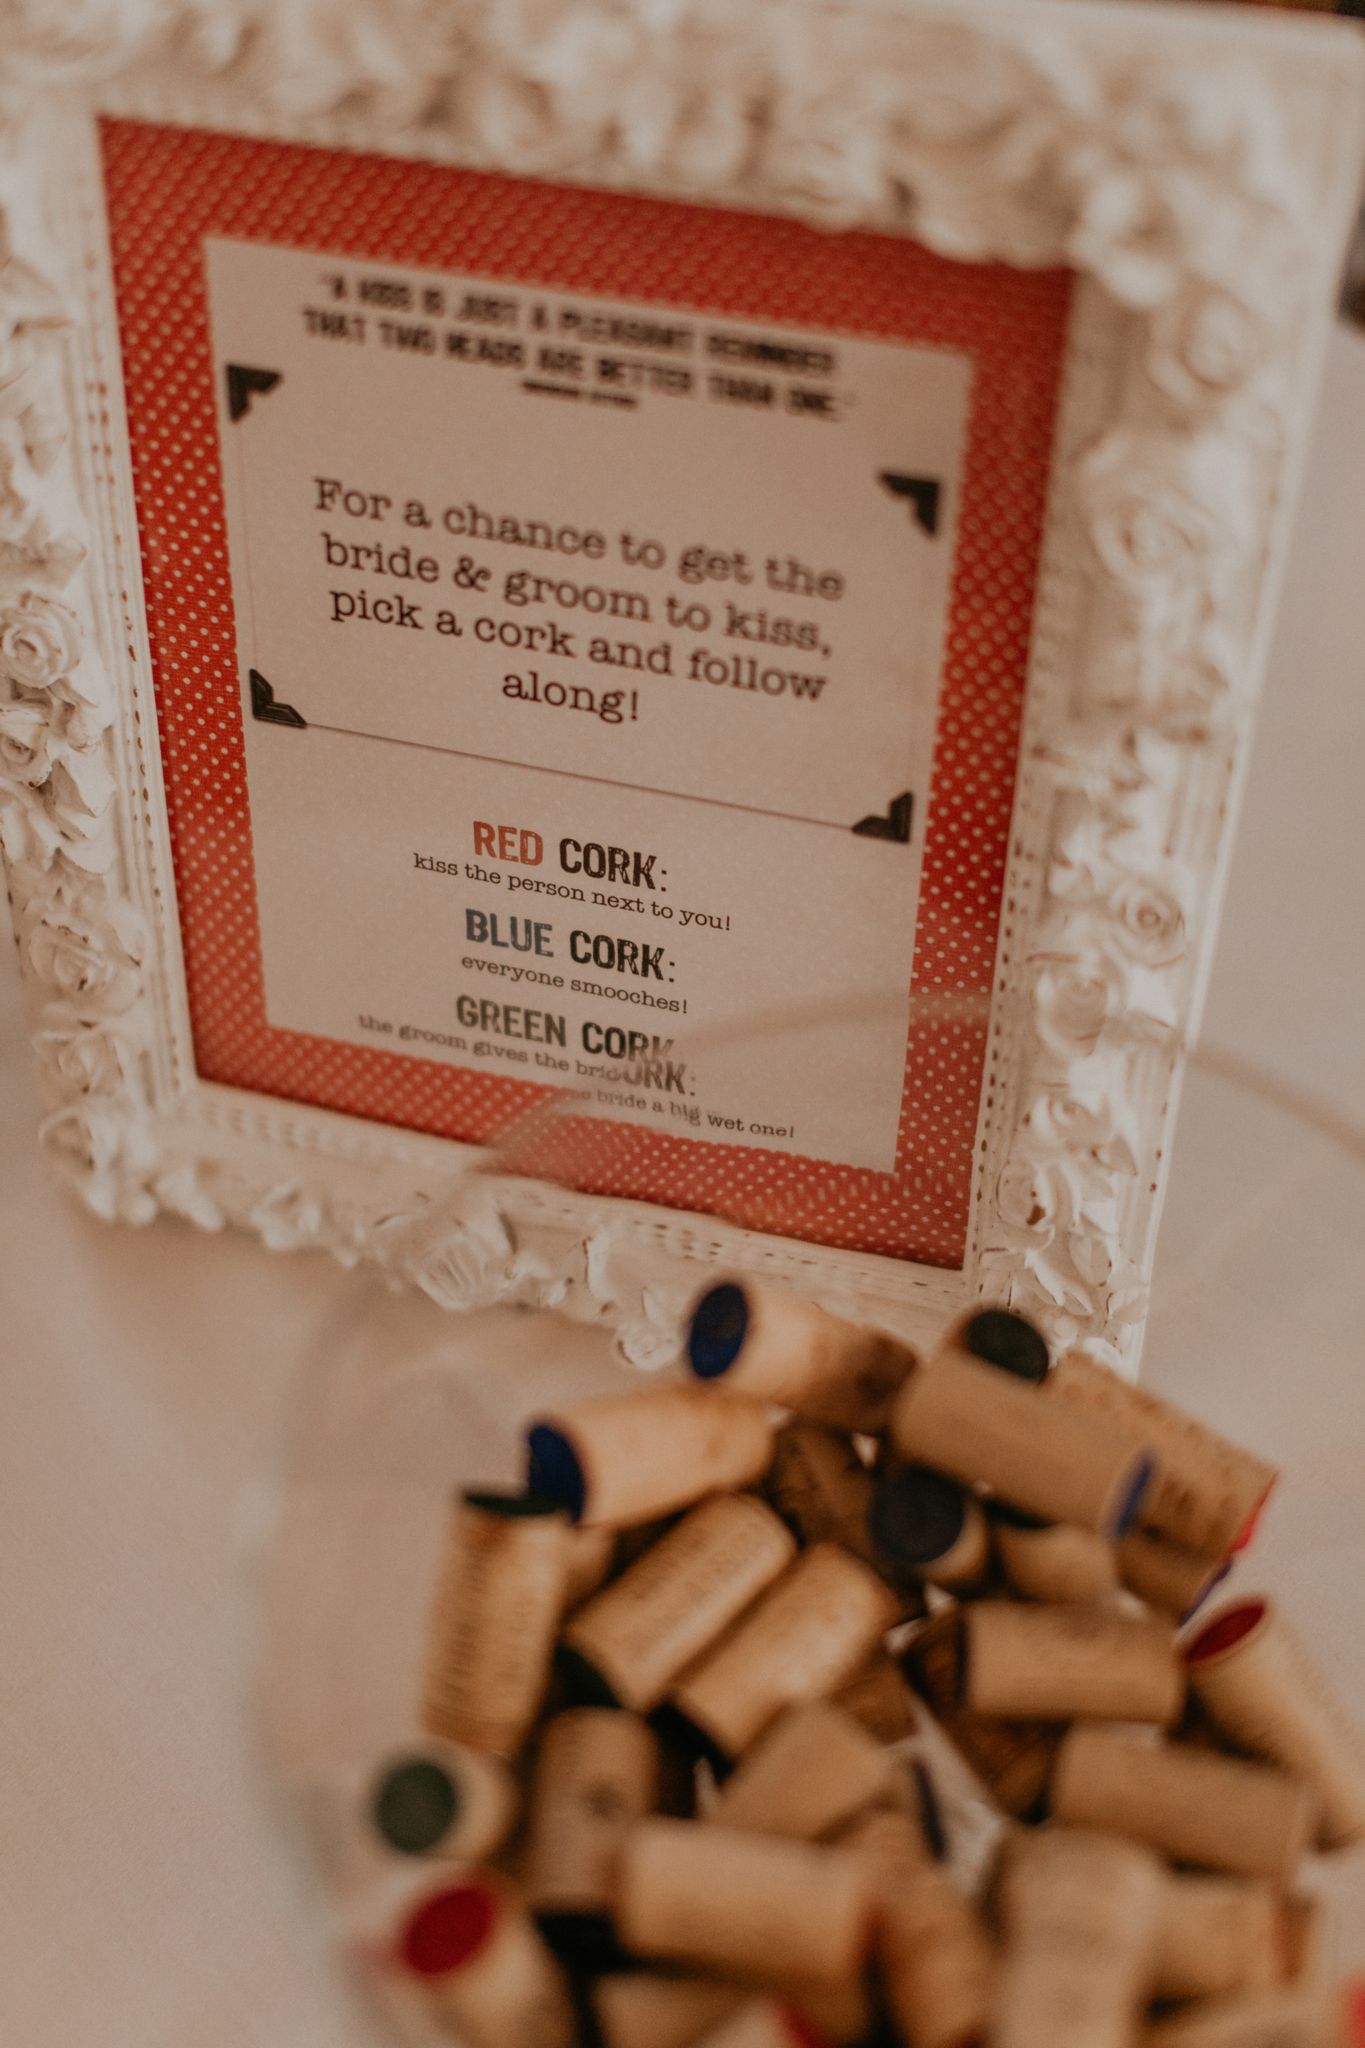 Wedding day details of wine corks and wedding game instructions